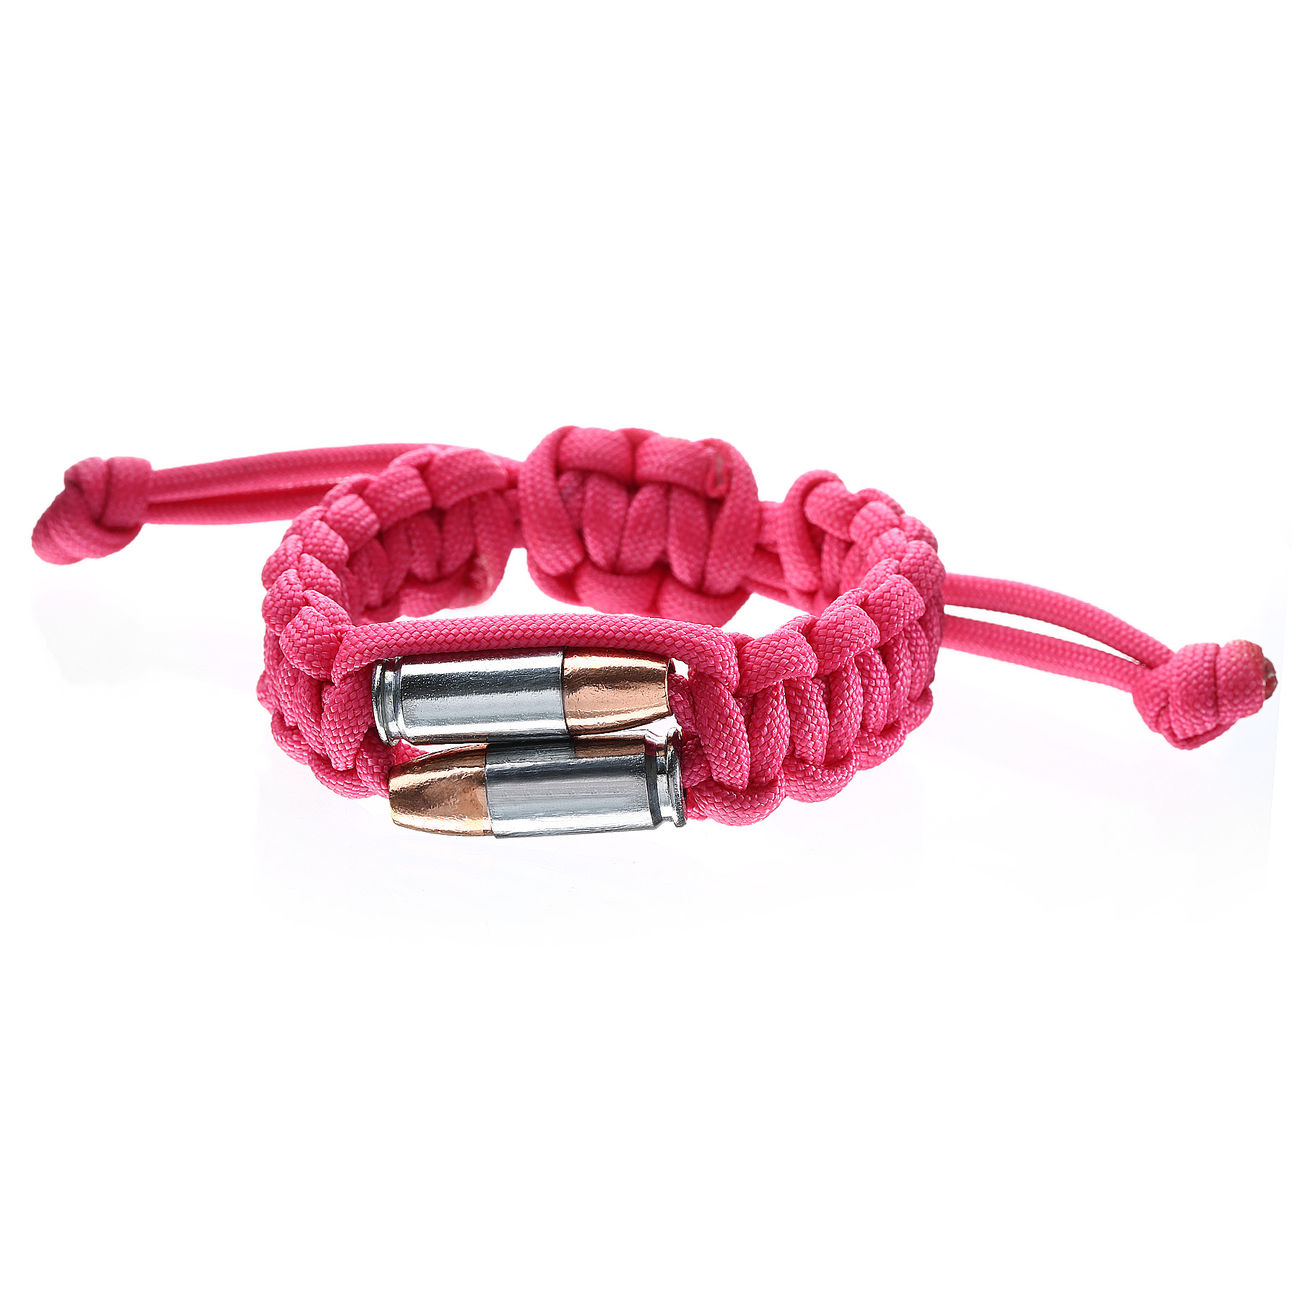 Real Bullet Armband Bullet Twins Paracord pink 1